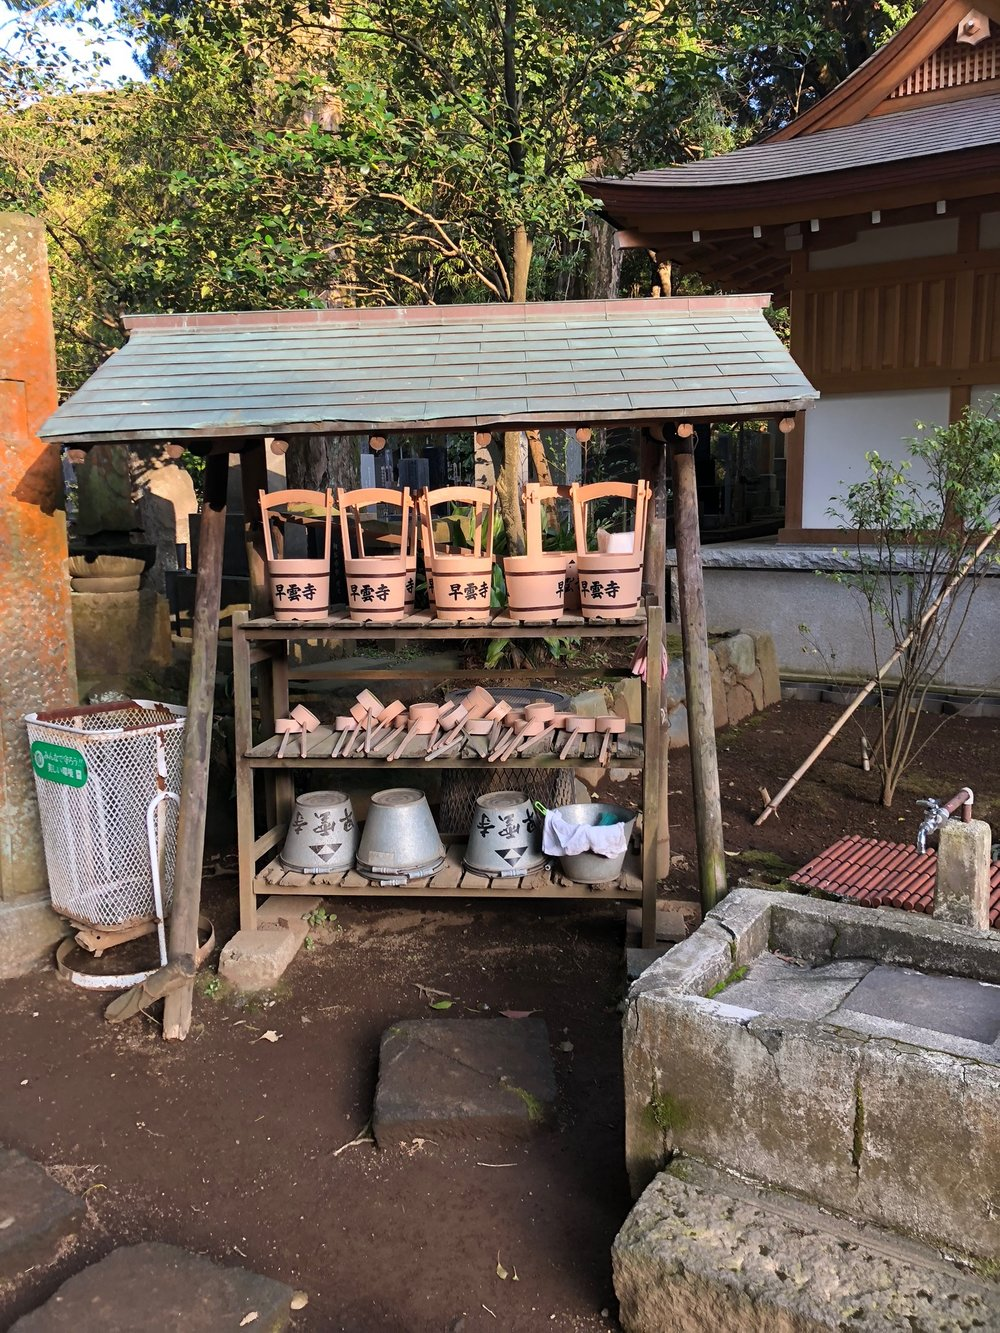 We stumbled upon this small shrine near our ryokan during an early morning stroll.